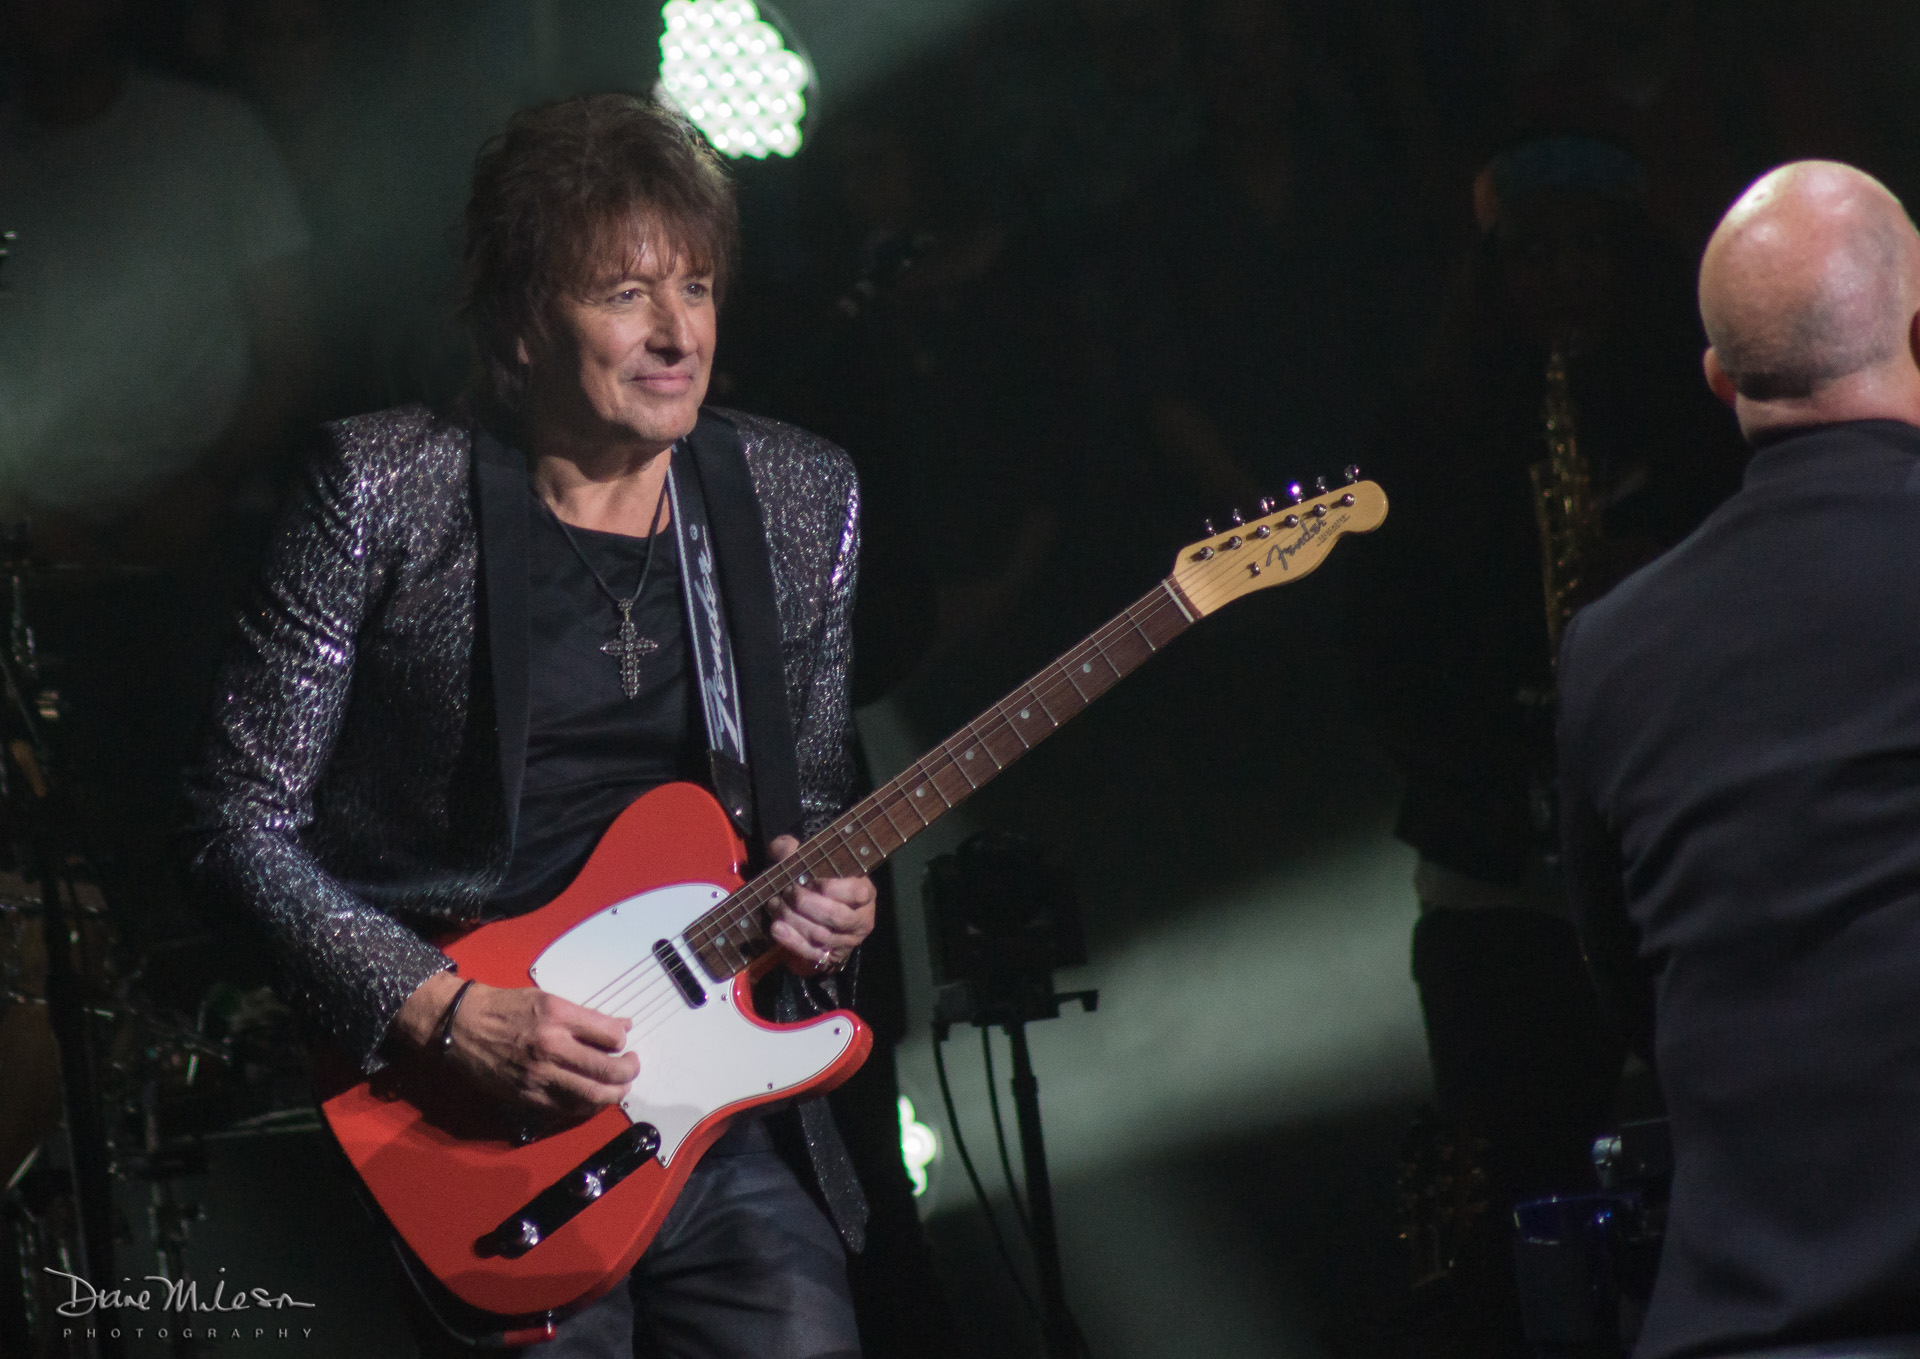 Richie Sambora of Bon Jovi